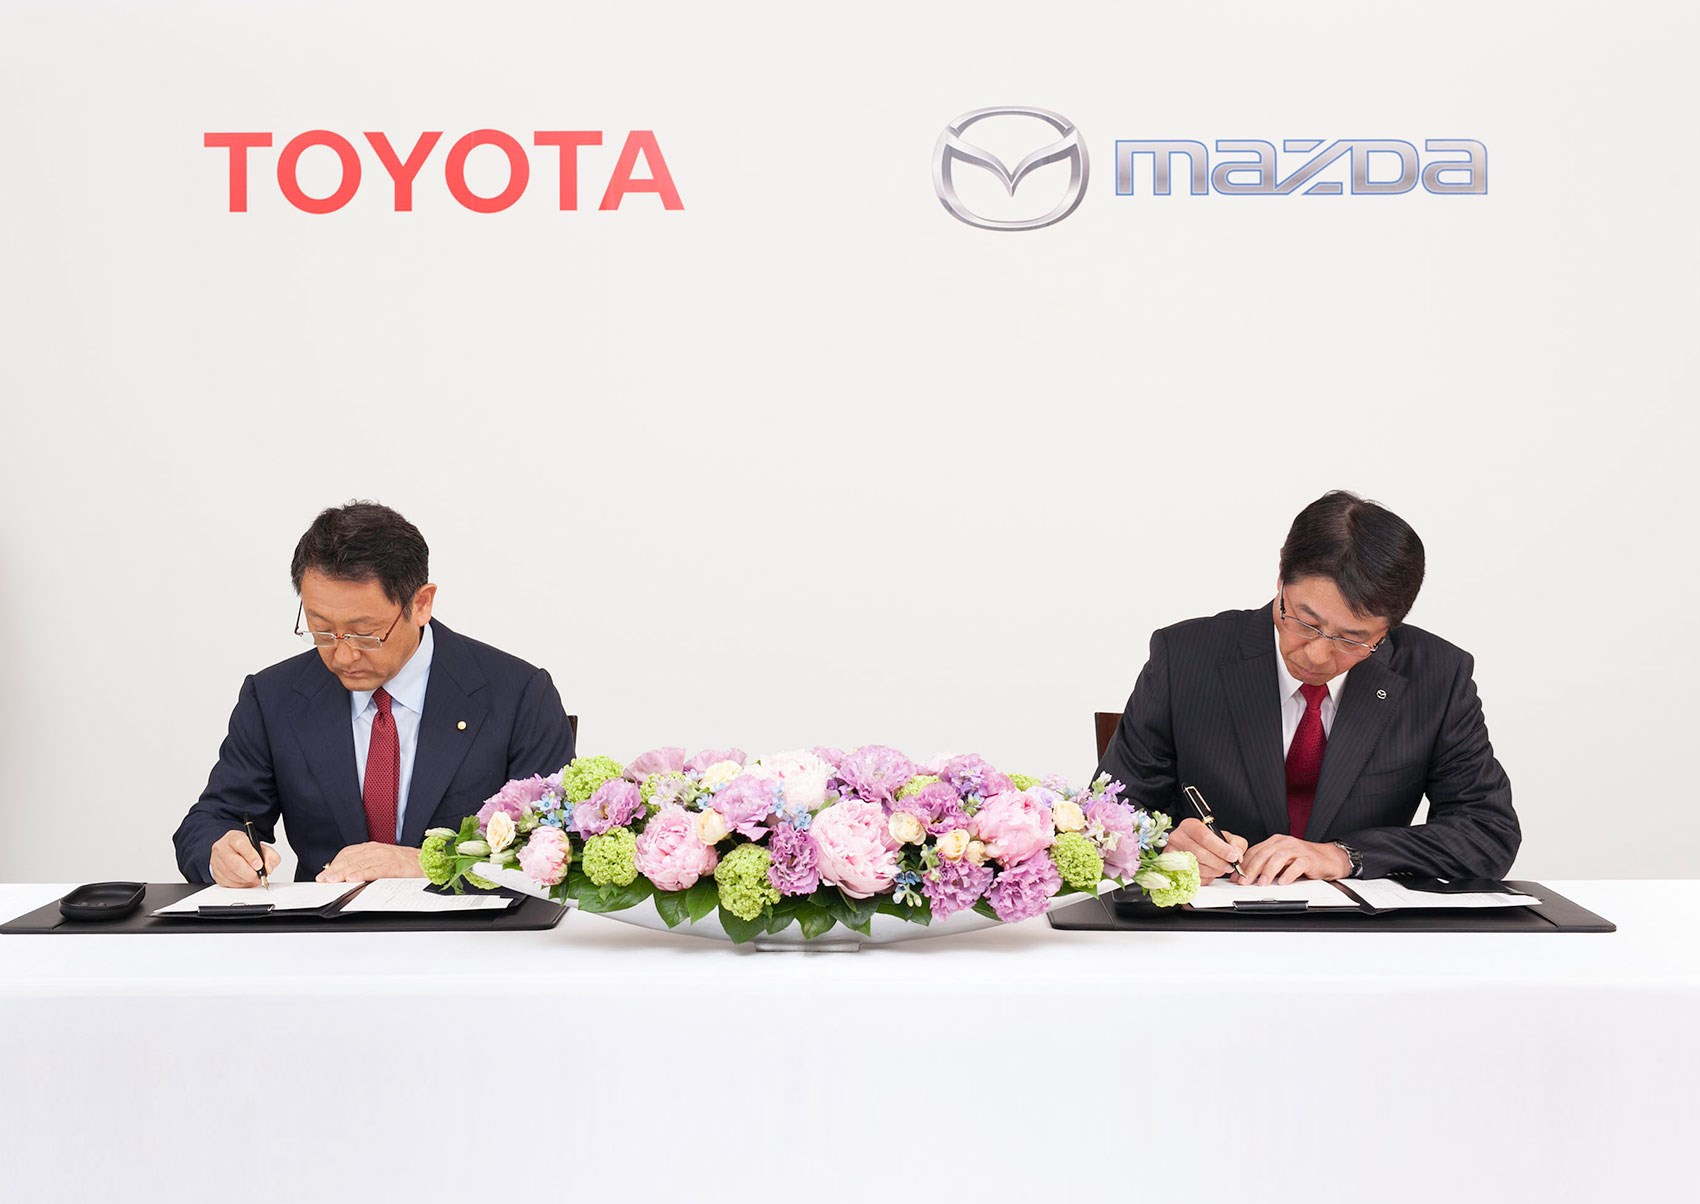 Toyota And Mazda Top Br Sign The Deal 13 May 2017